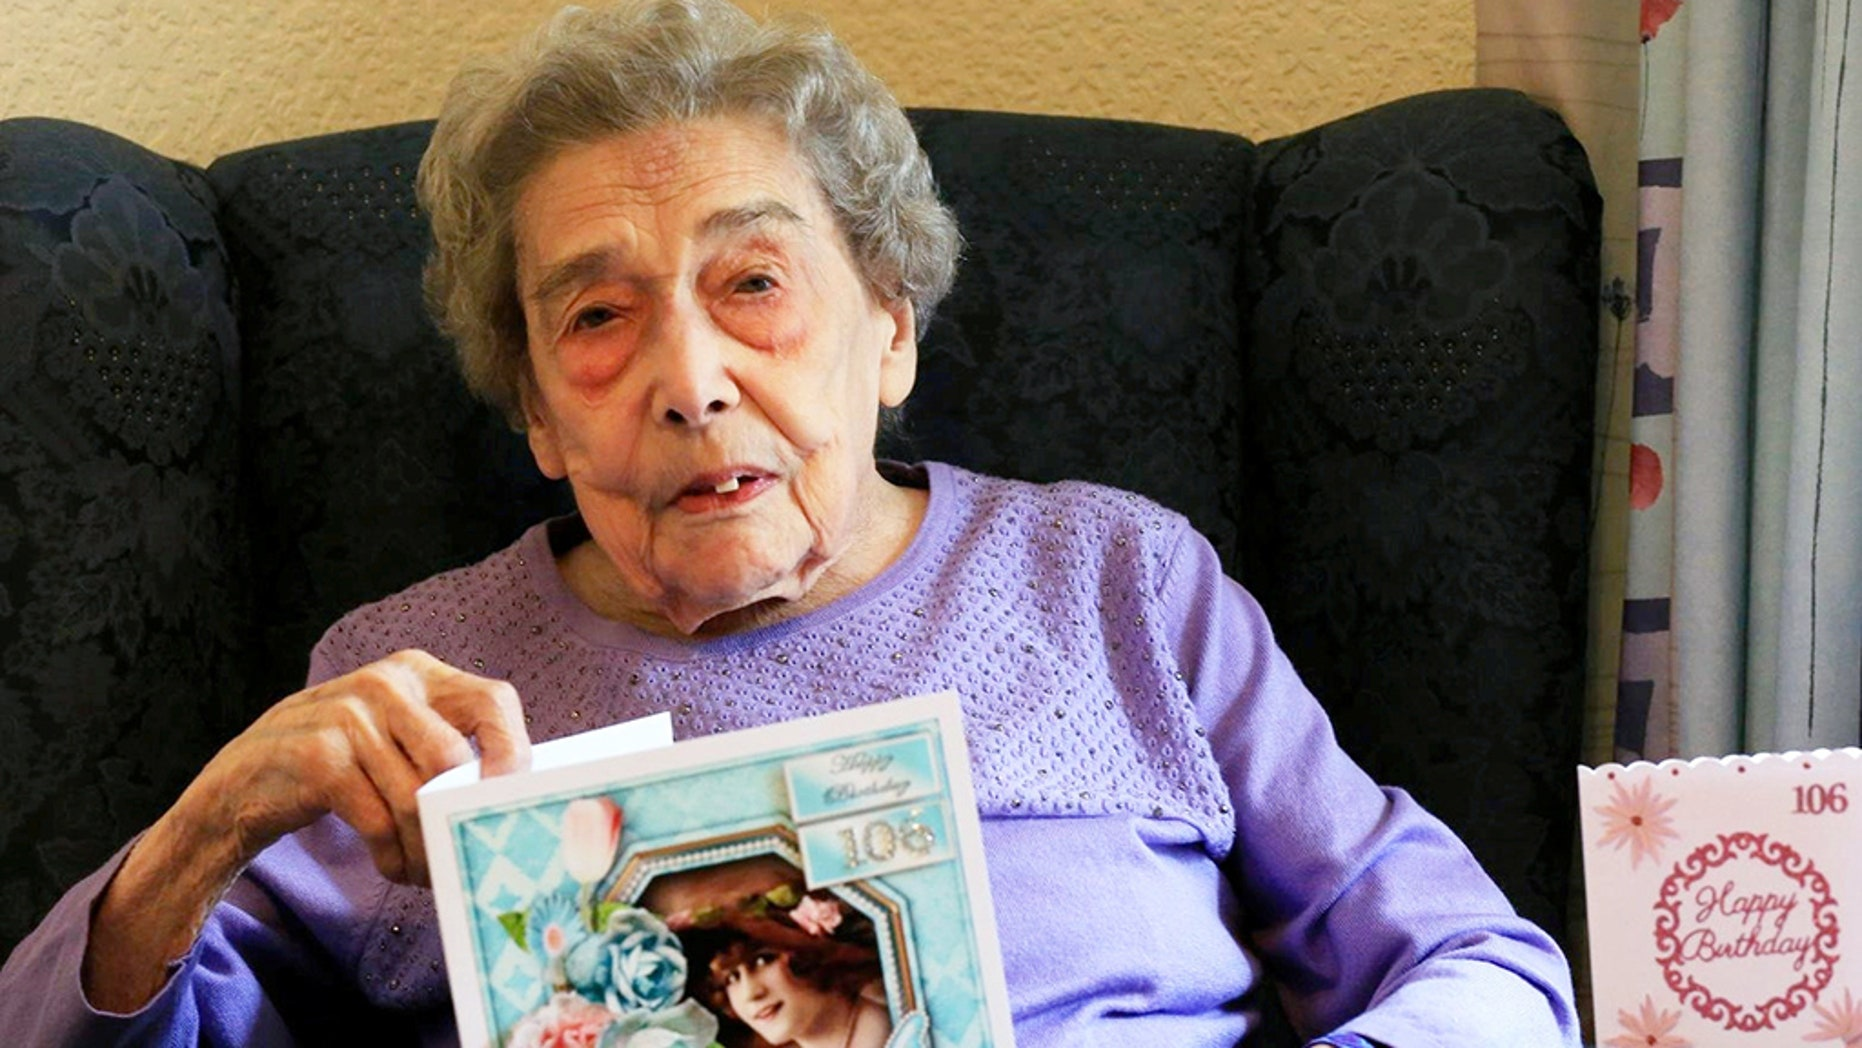 Madeline Dye, 106, said she credited her long life by not having a relationship her whole life.